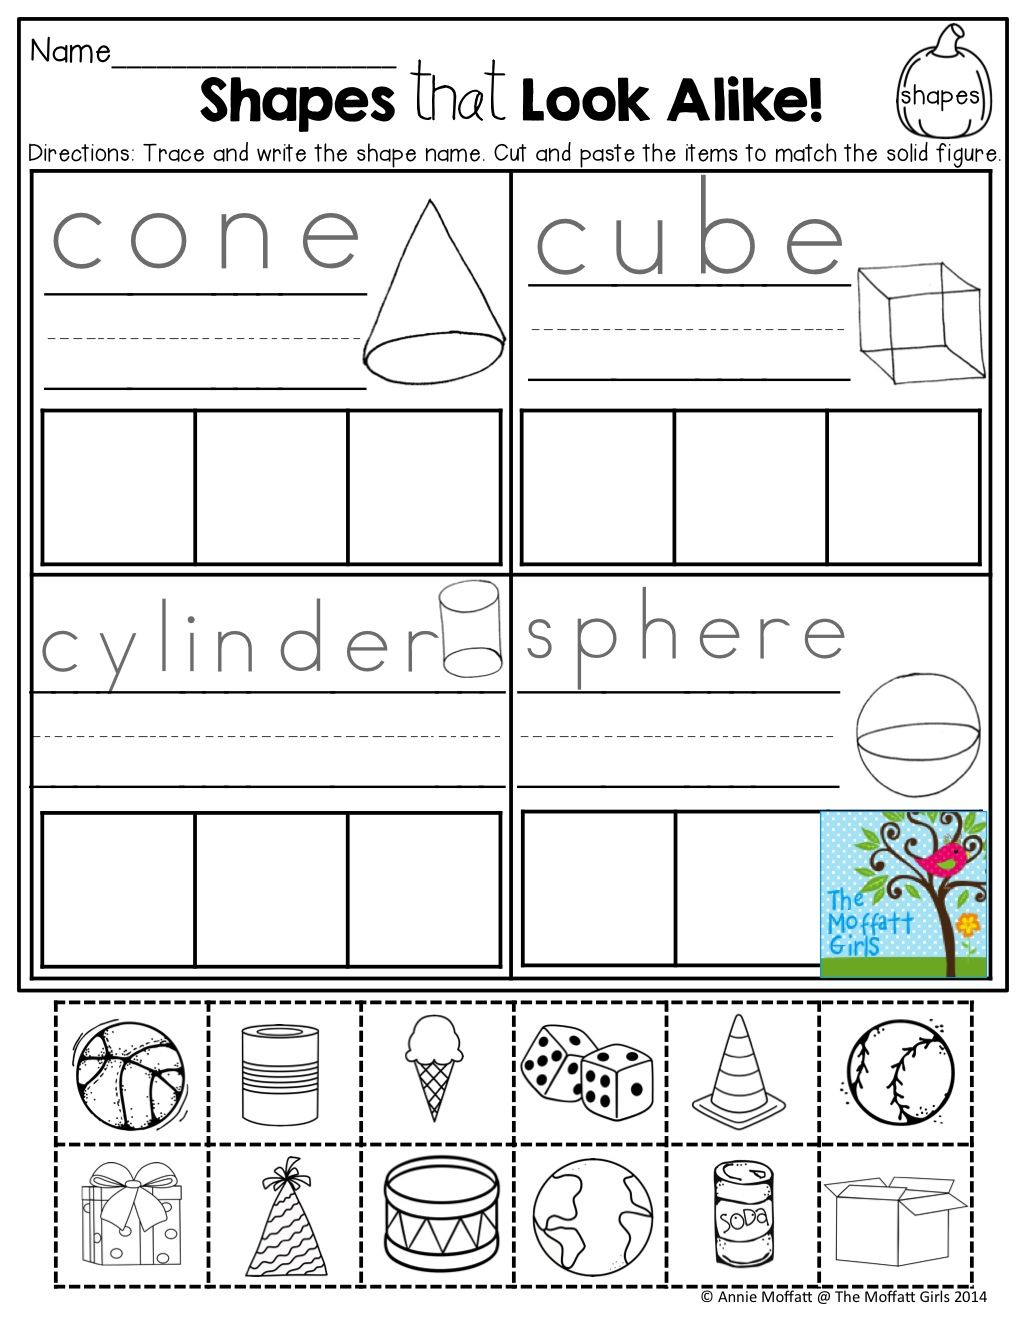 Free Printable 3d Shapes Worksheets For Kindergarten